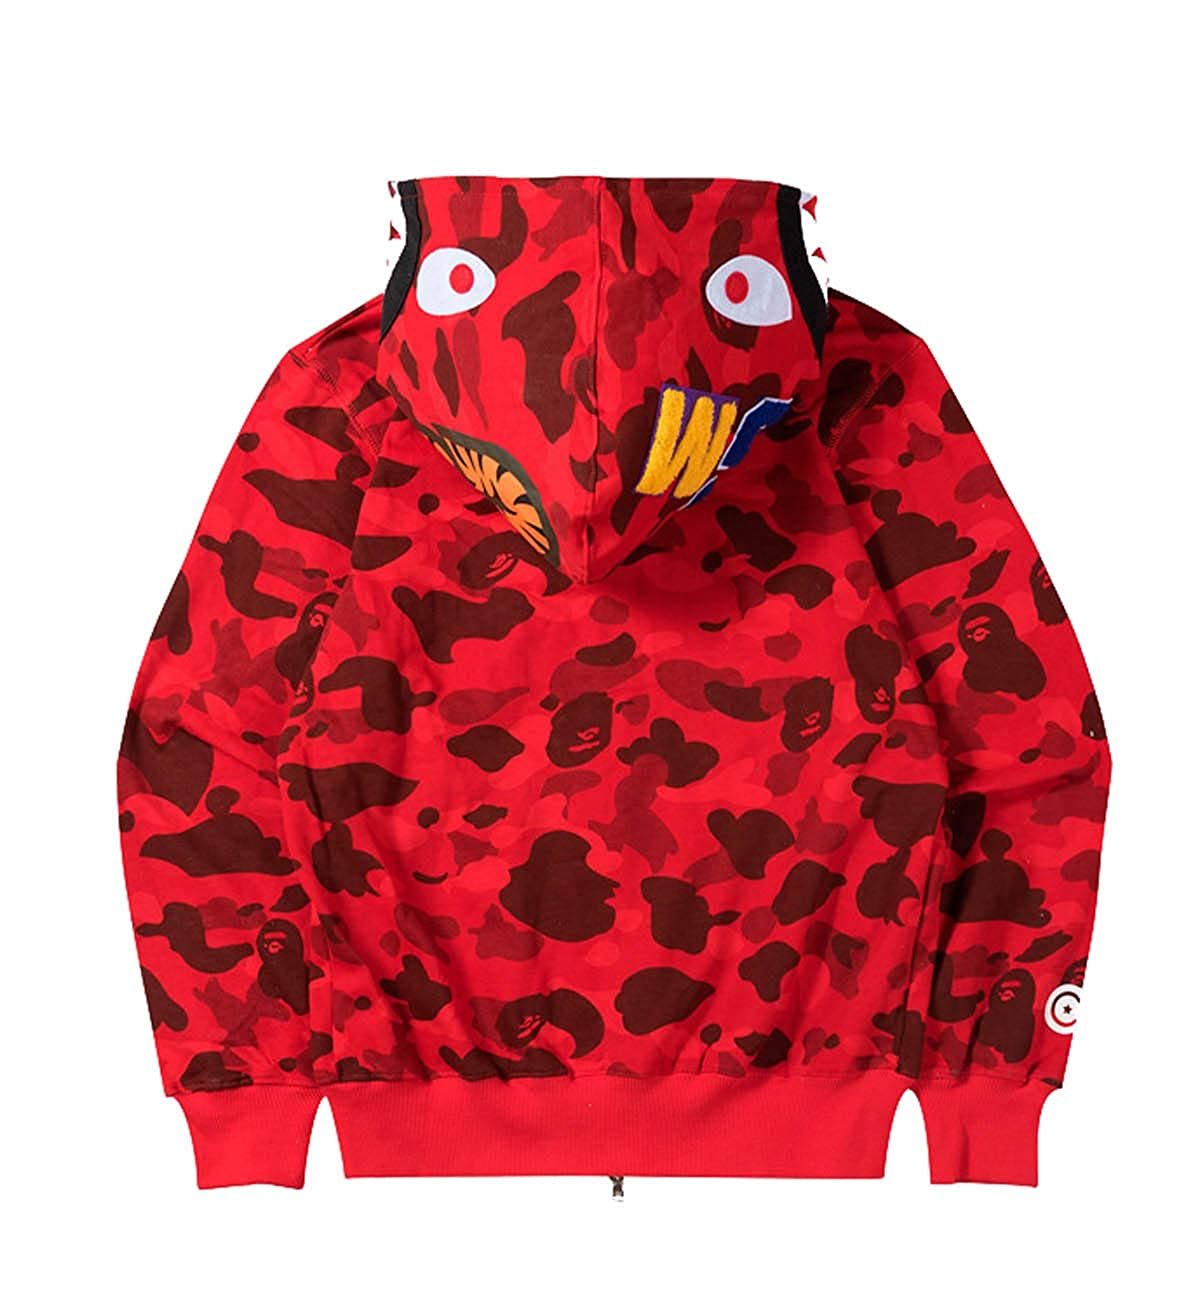 Men's A Bathing Ape BAPE Shark Head Thin Coat Full Zipper Camouflage Jacket Hoodie